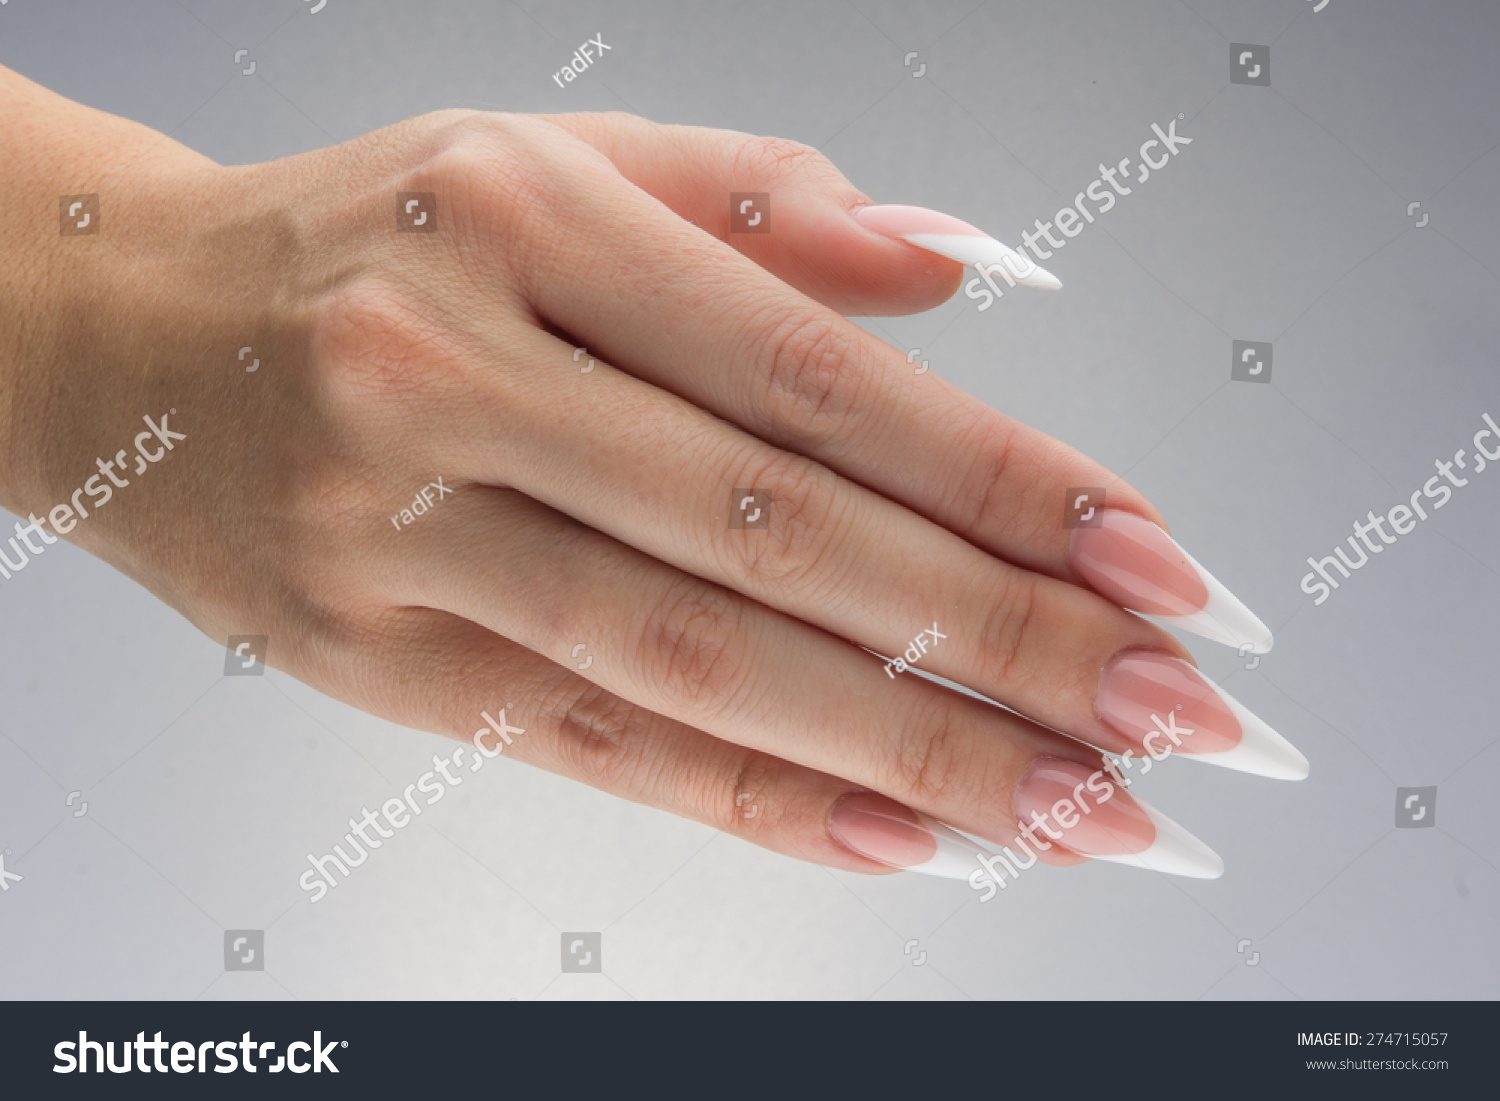 Painted Extreme Long Nails Hands Isolated Stock Photo (Royalty Free ...